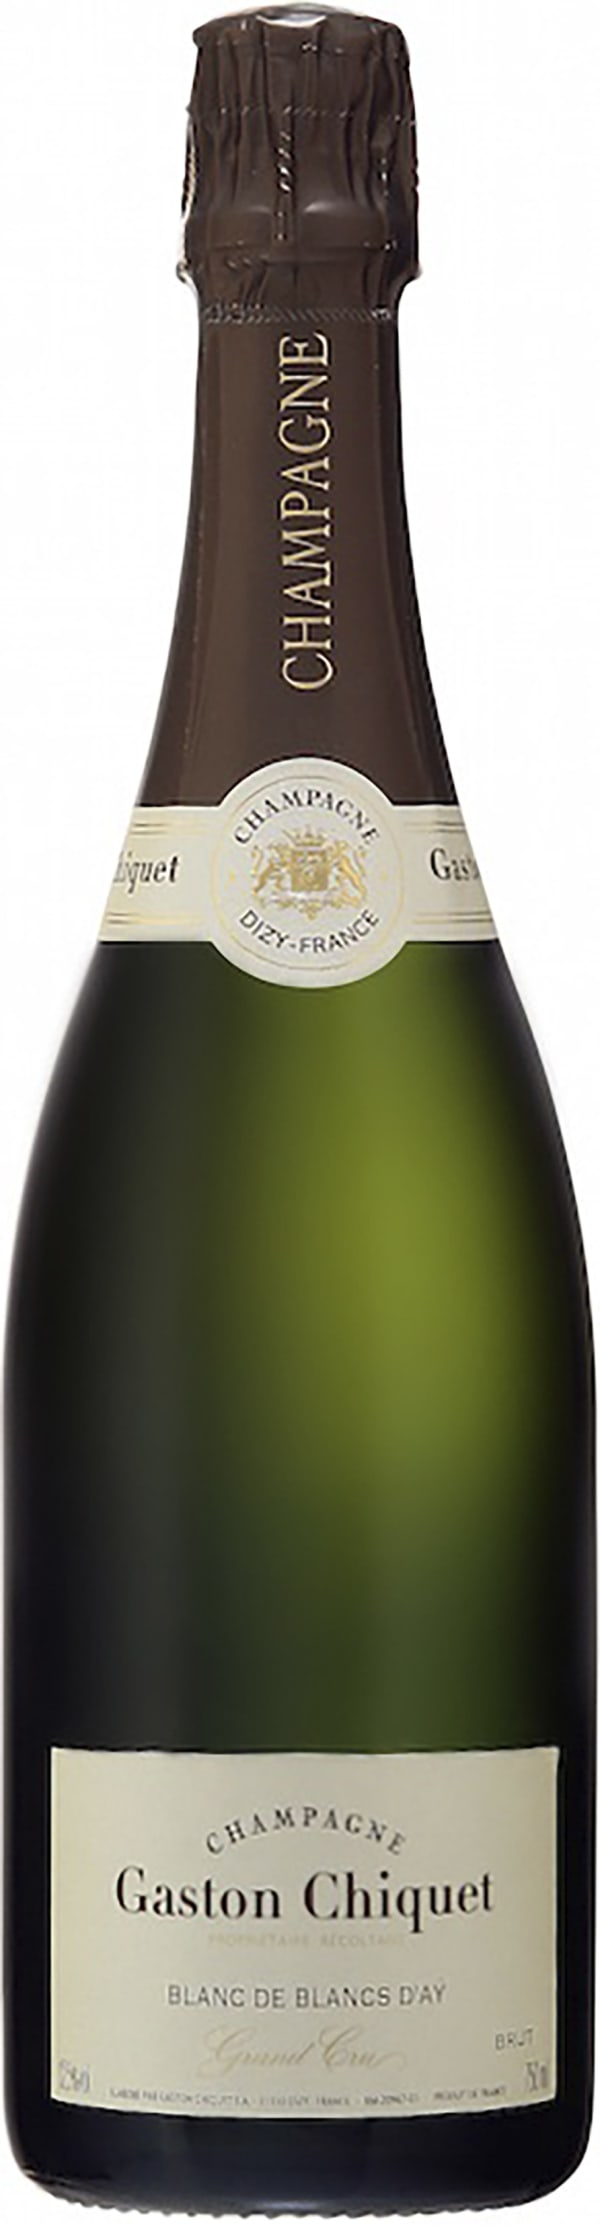 Gaston Chiquet Blanc de Blancs D'Aÿ Grand Cru Brut